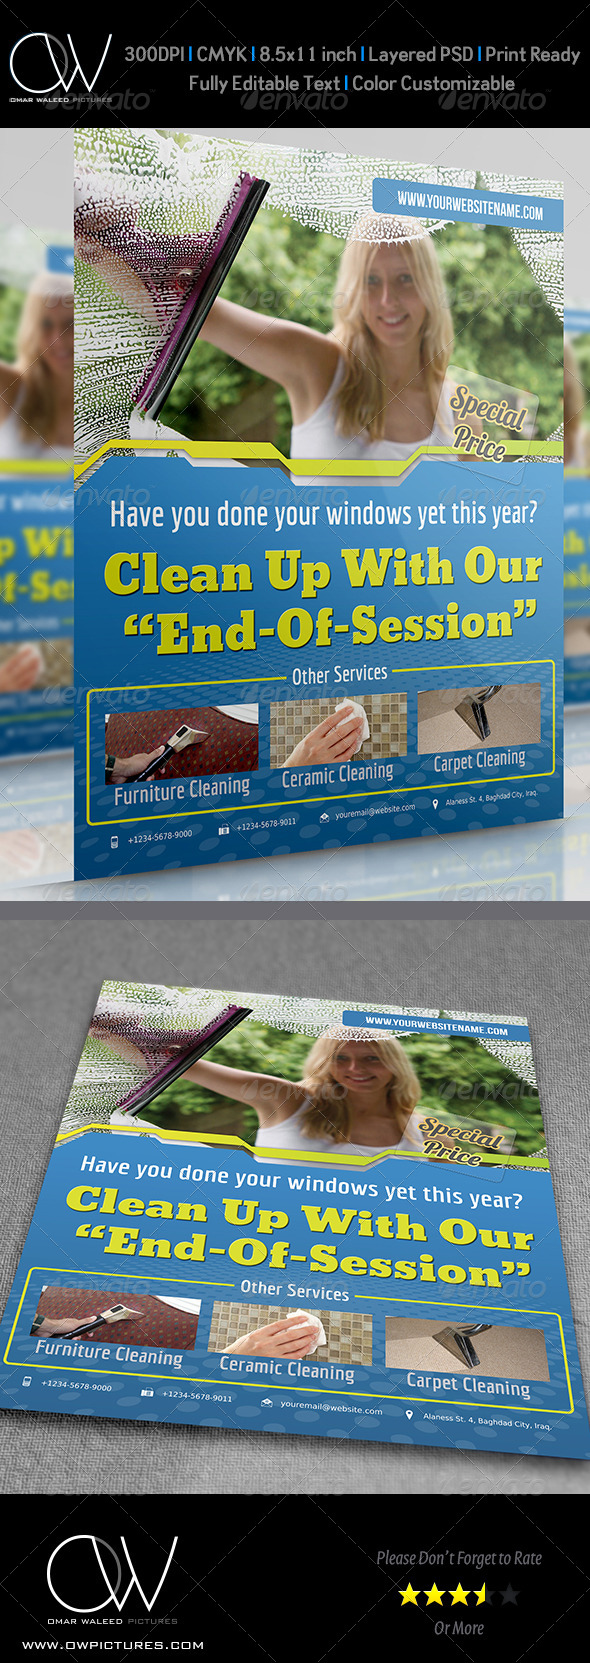 Cleaning Services Flyer - Commerce Flyers